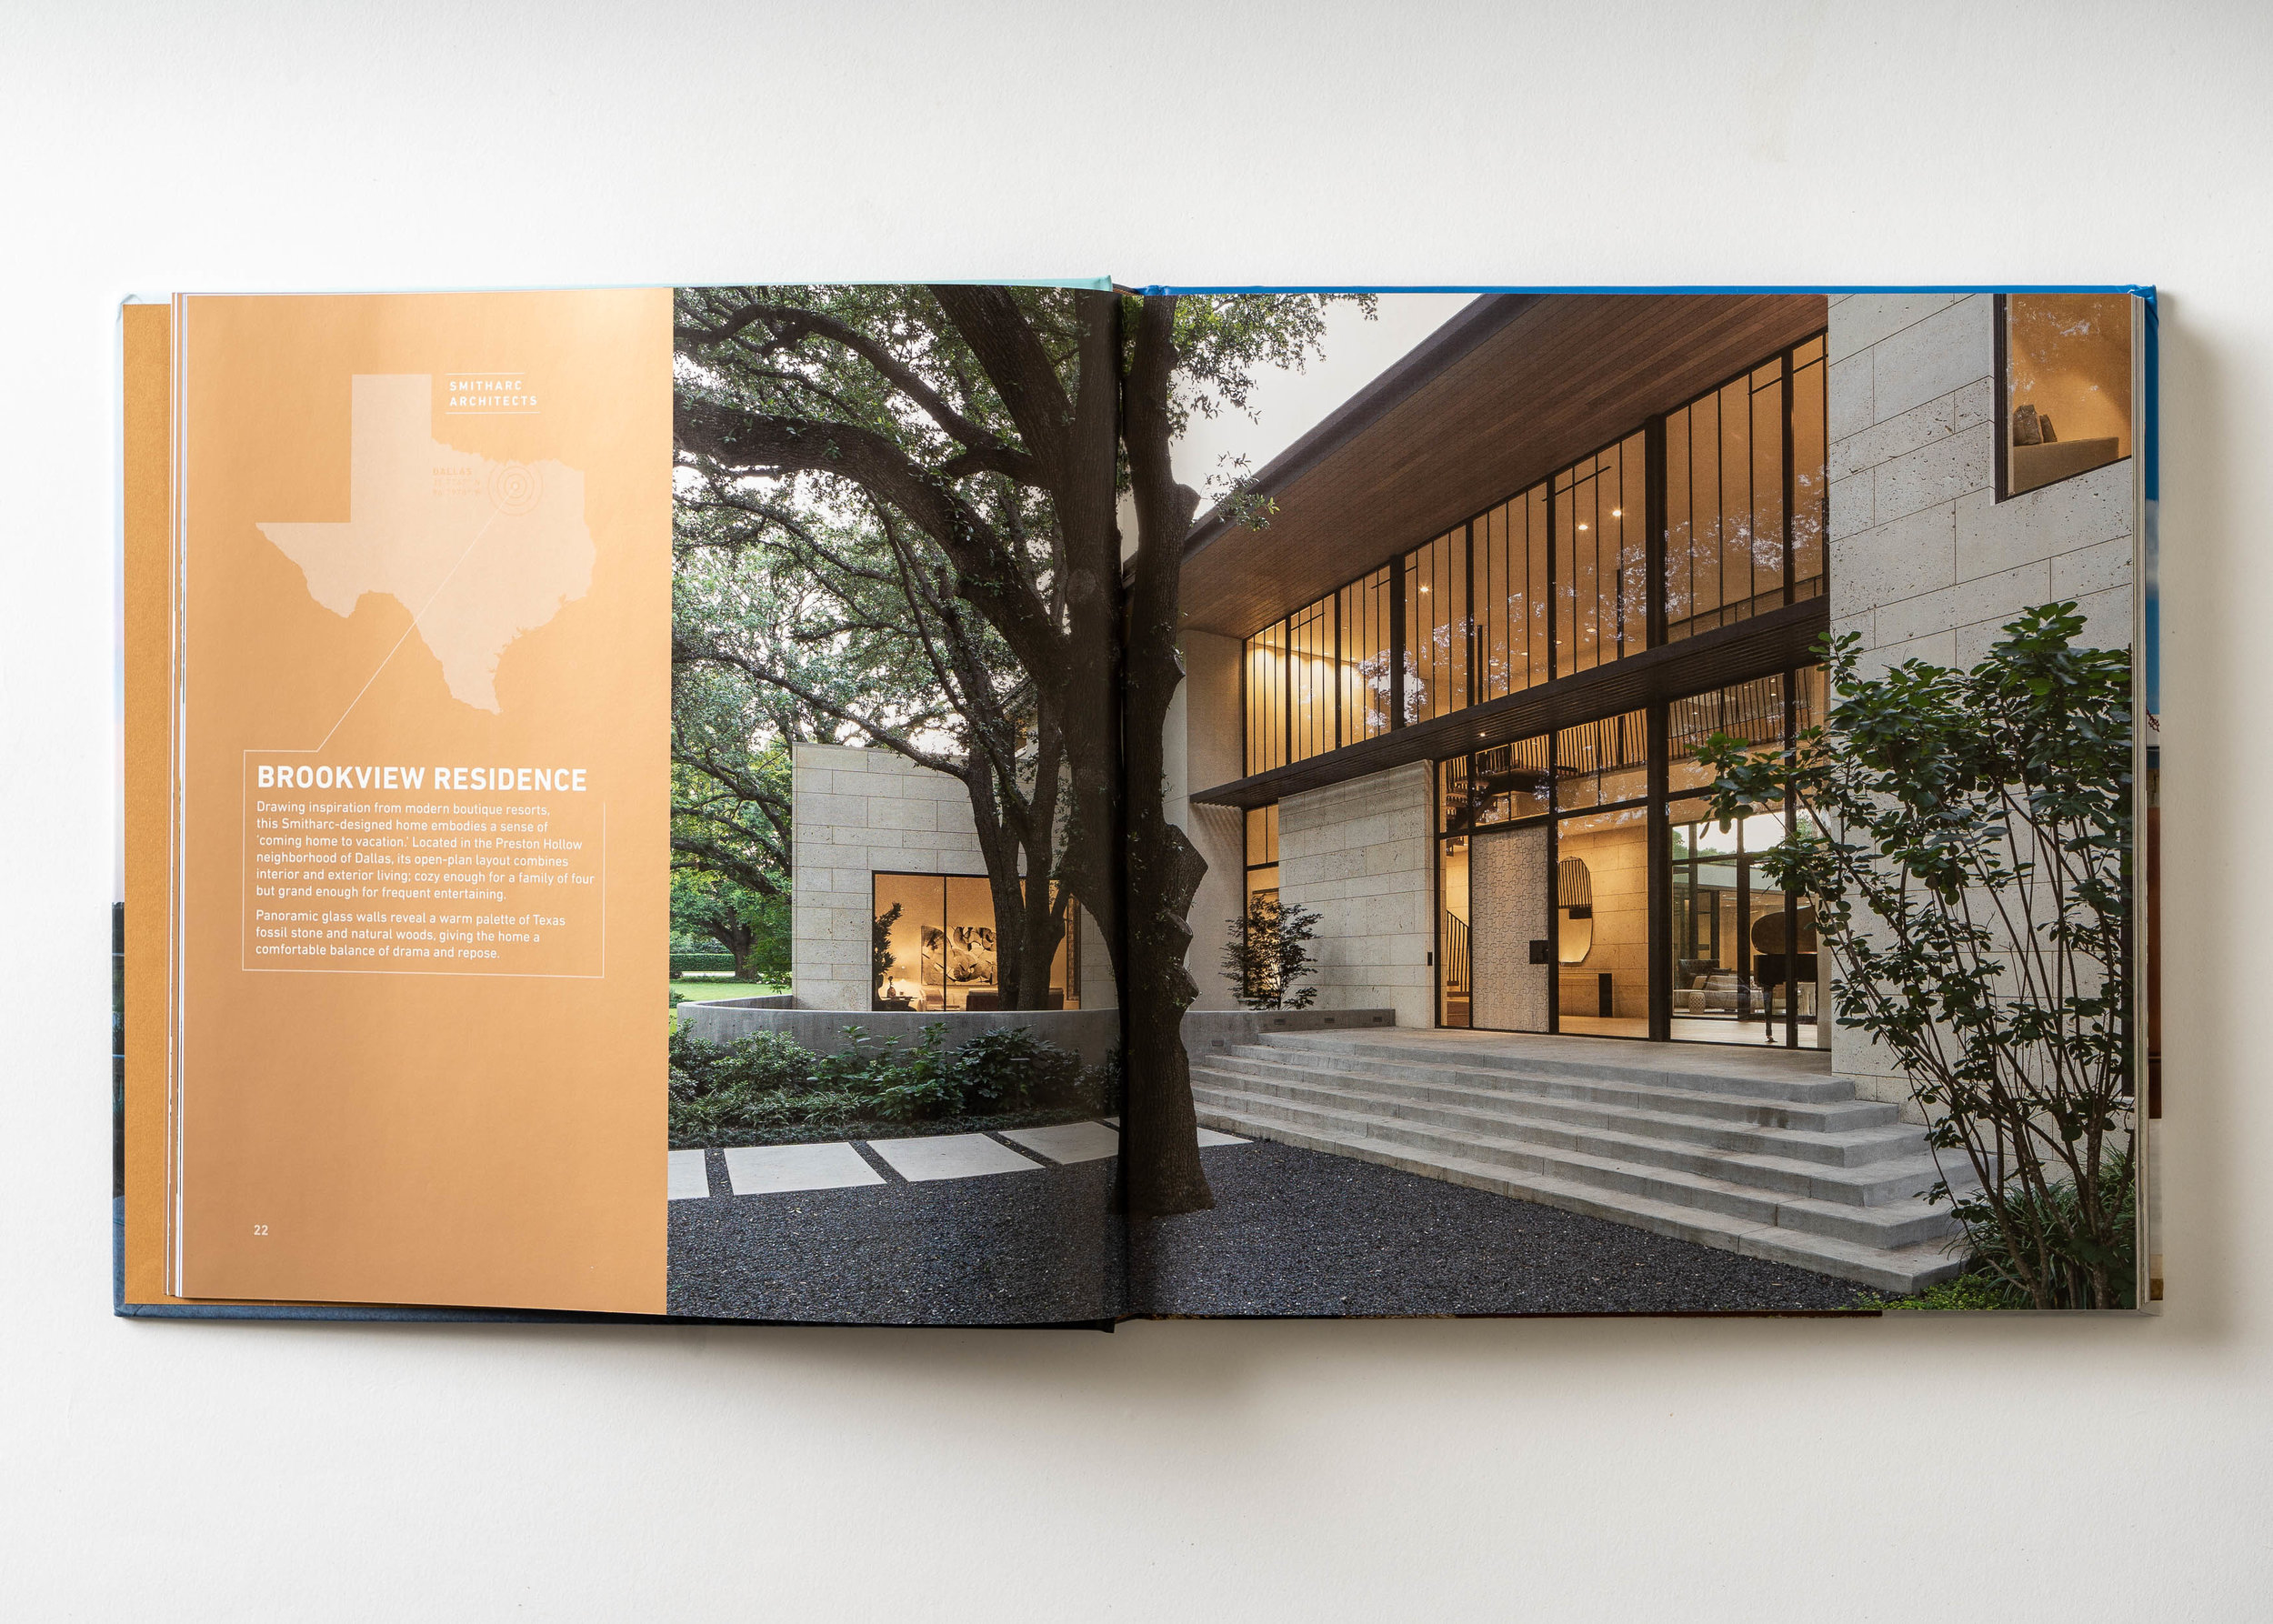 Stephen Karlisch Texas Modern Brookview Entrance